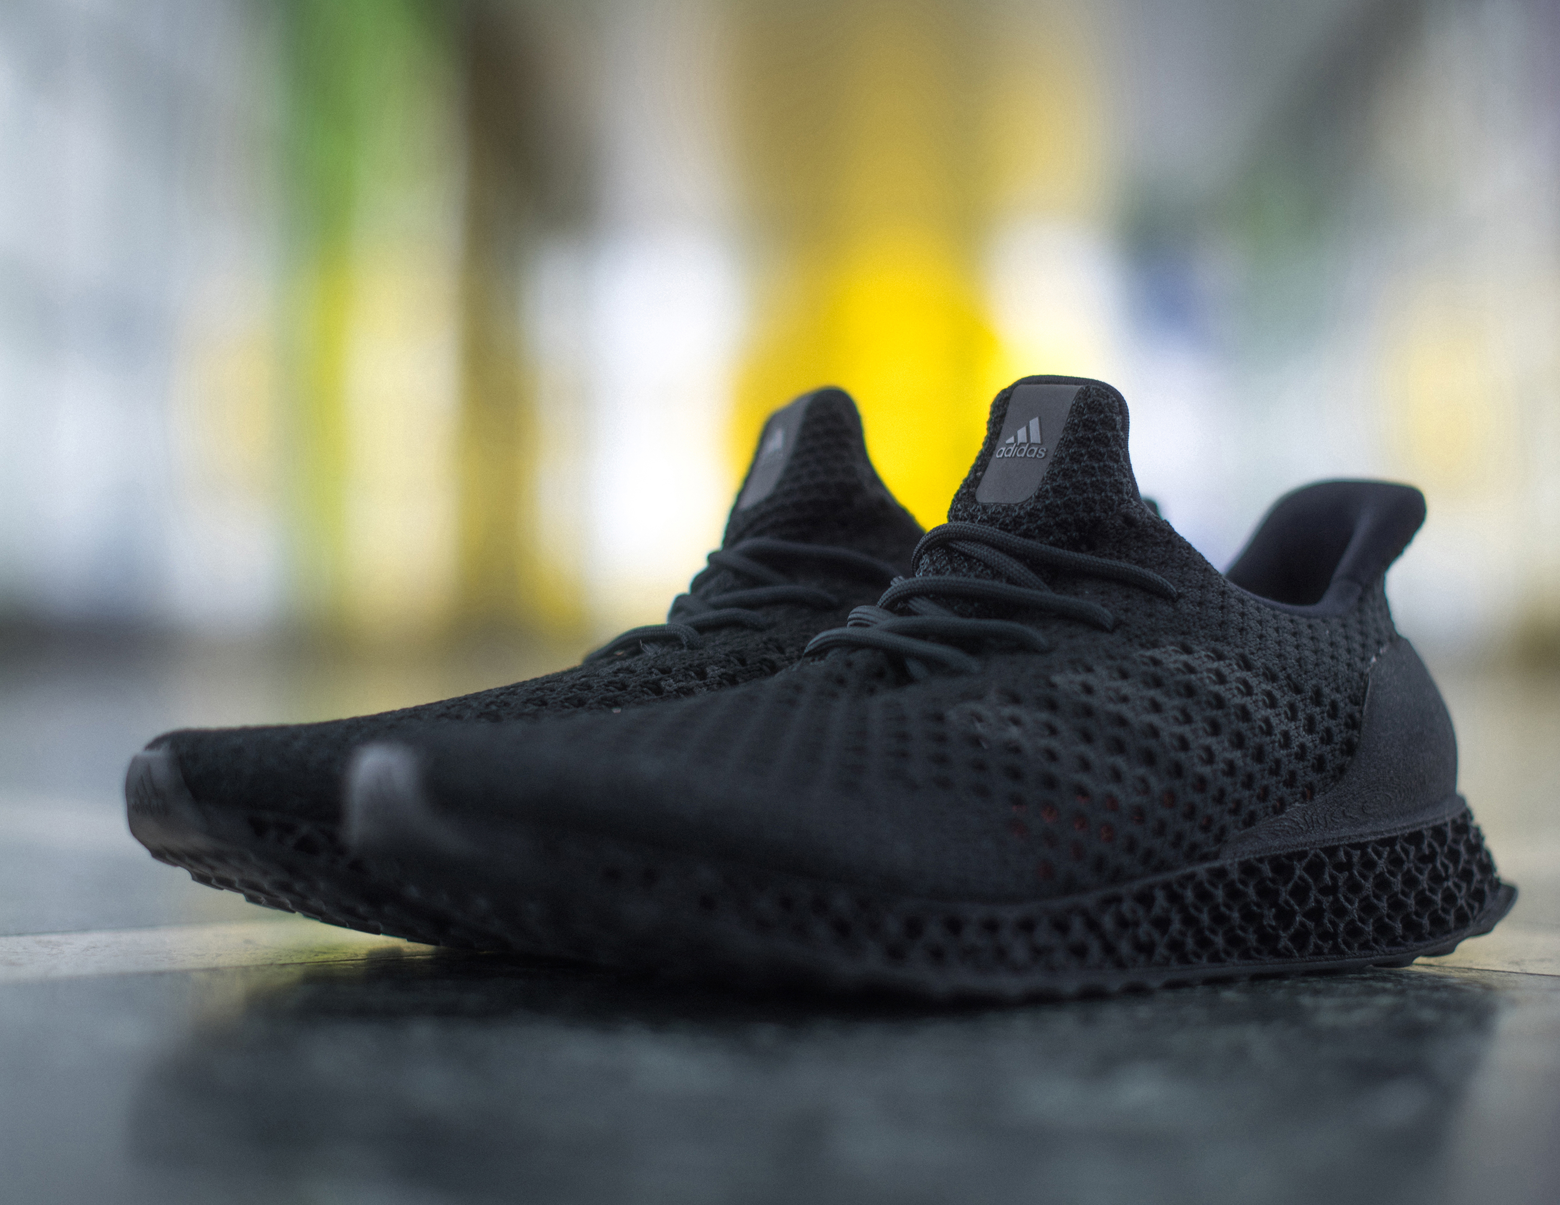 Future Footwear! The adidas 3D Runner Will Be Available In Limited Numbers